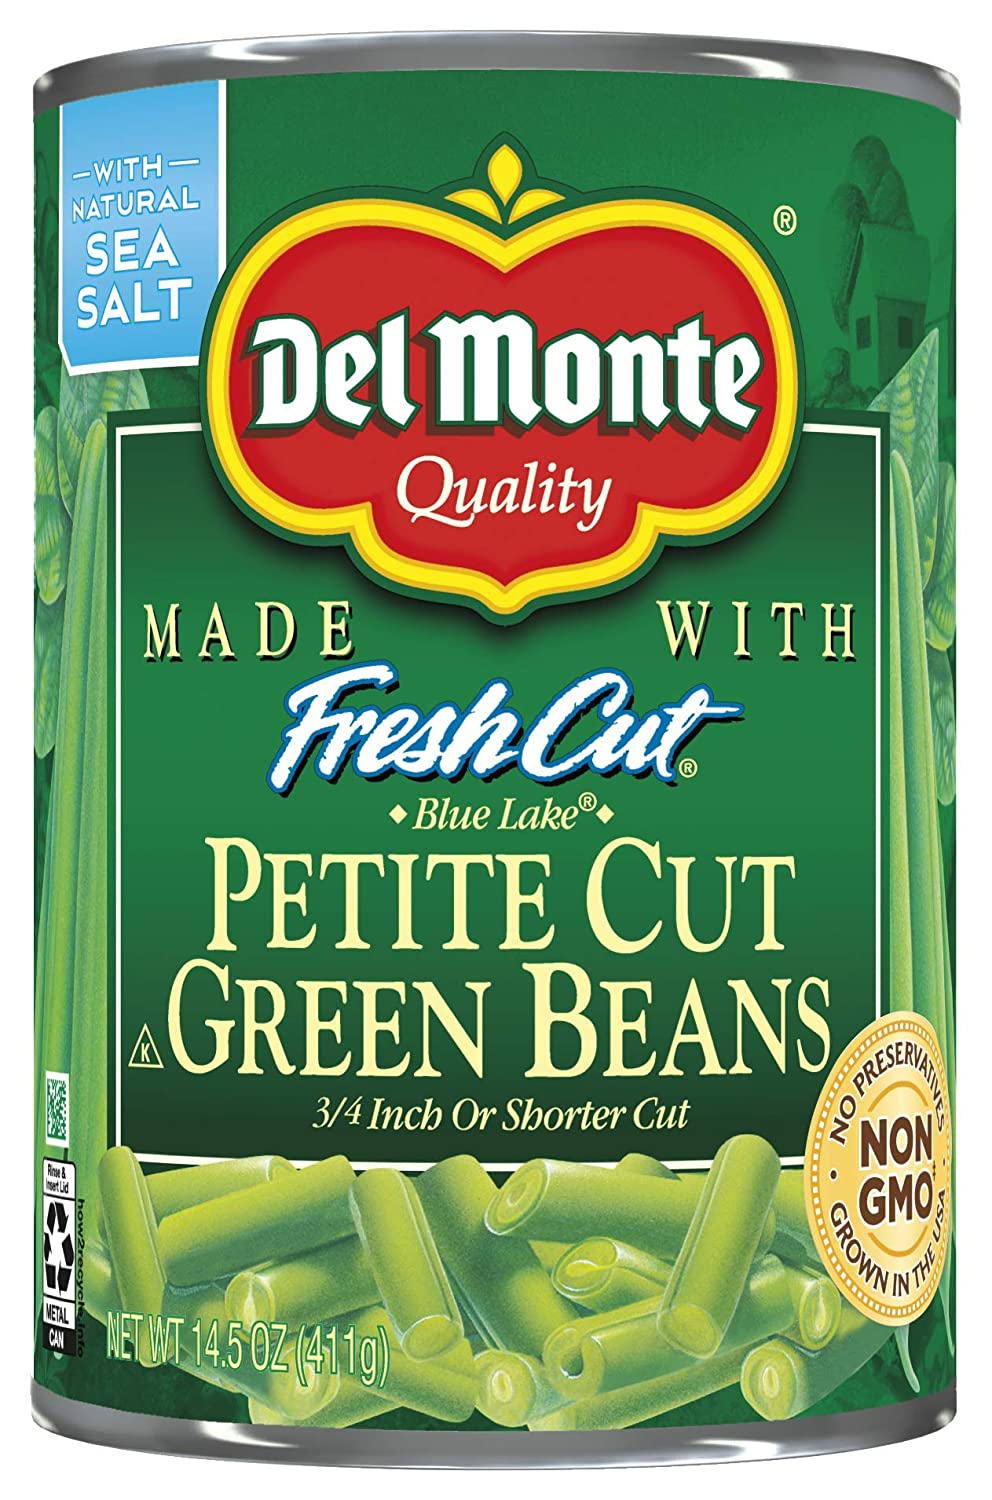 Del New product Monte Petite Cut Green Clearance SALE! Limited time! Beans Oz Pack Of 14.5 12